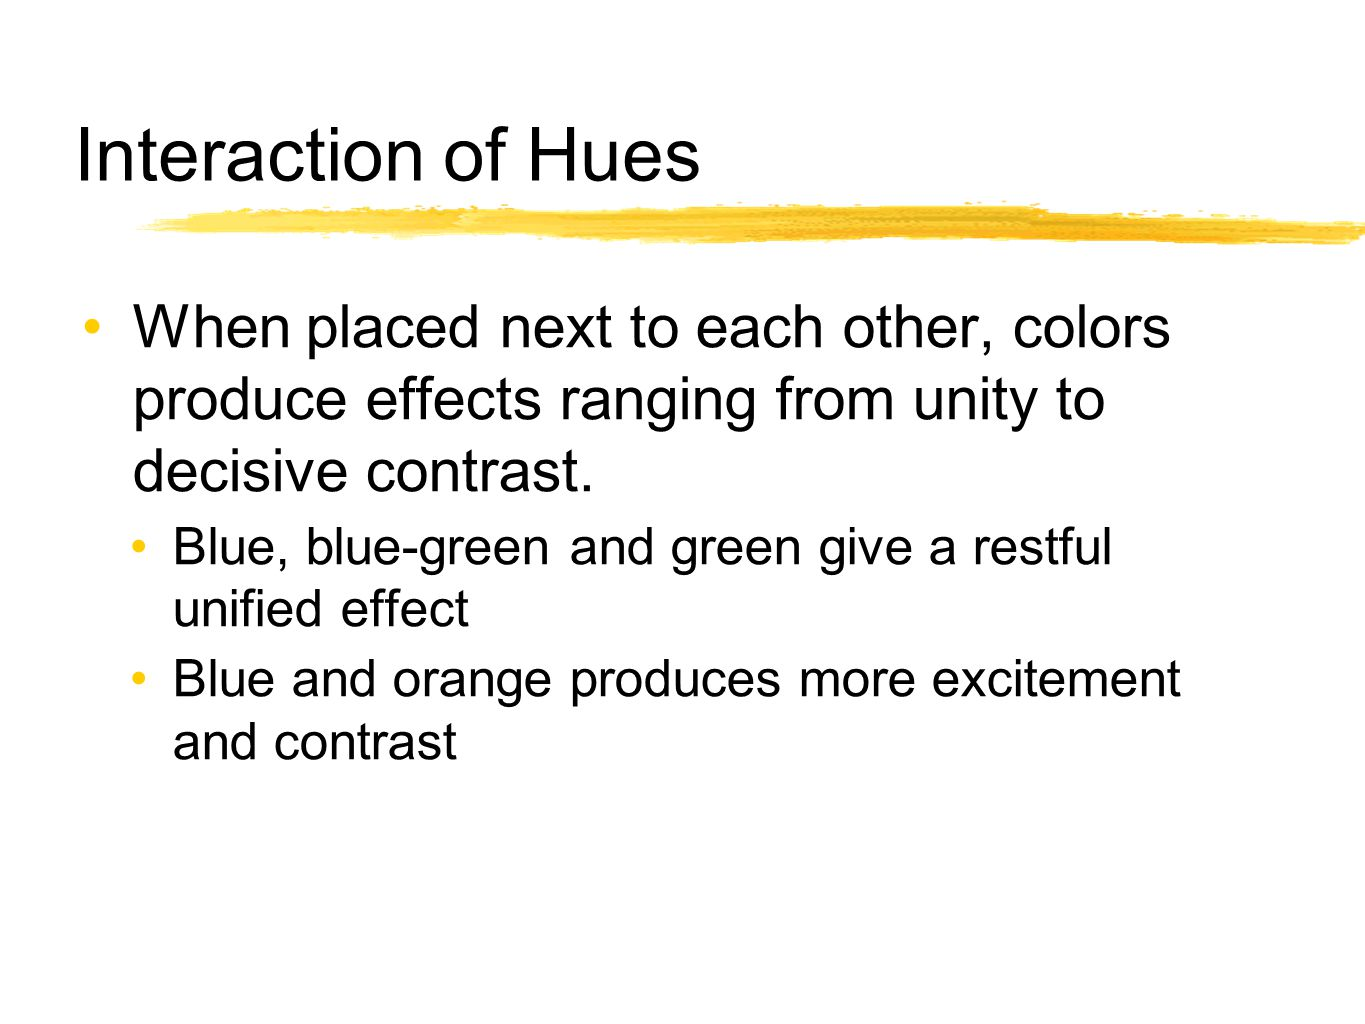 Interaction of Hues When placed next to each other, colors produce effects ranging from unity to decisive contrast.